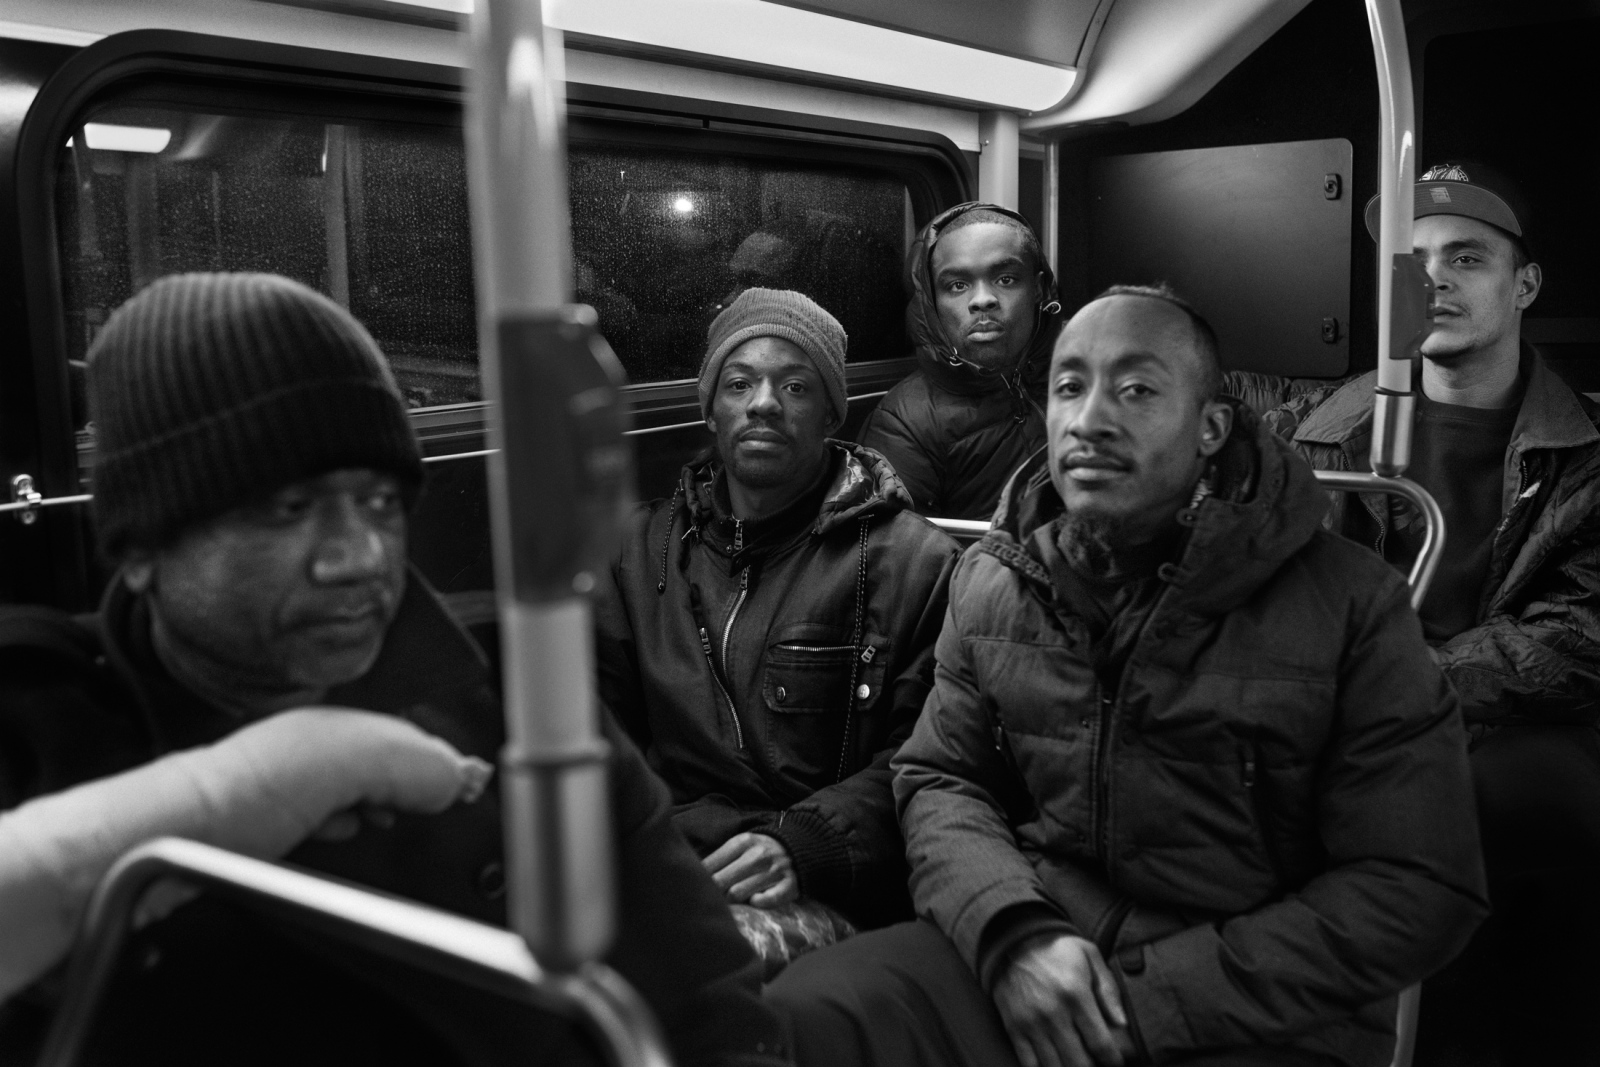 Around 80% of Rikers population has not being convicted or proved guilty but as they can not afford to post they have to remain in jail while awaiting trial. Five formerly incarcerated men ride the Q100 bus after being released from Rikers Island.  All of them were released after posting bail.  From left to right Mohamed Ali Sha, 43, Rando Arison, 29, Kern Isaac, 21, Alfredo Gonzales, 36, and Luis Marino, 33. February 13th, 2016.